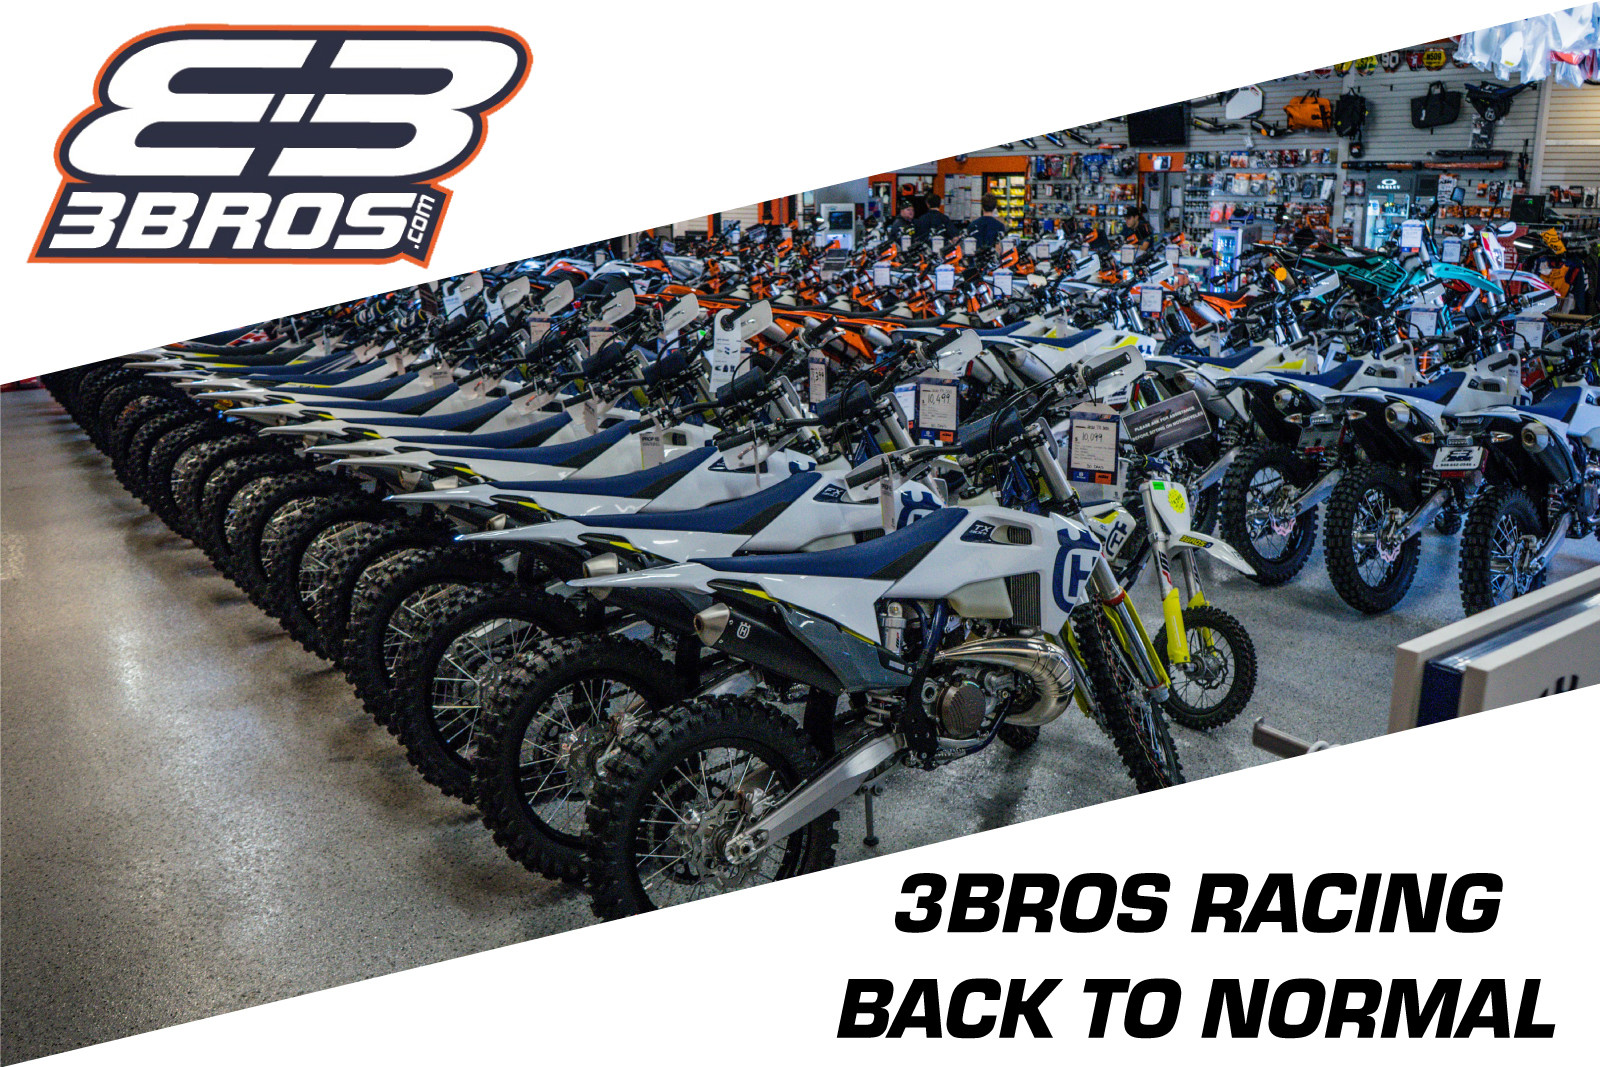 3 Brothers Racing: Back To Normal